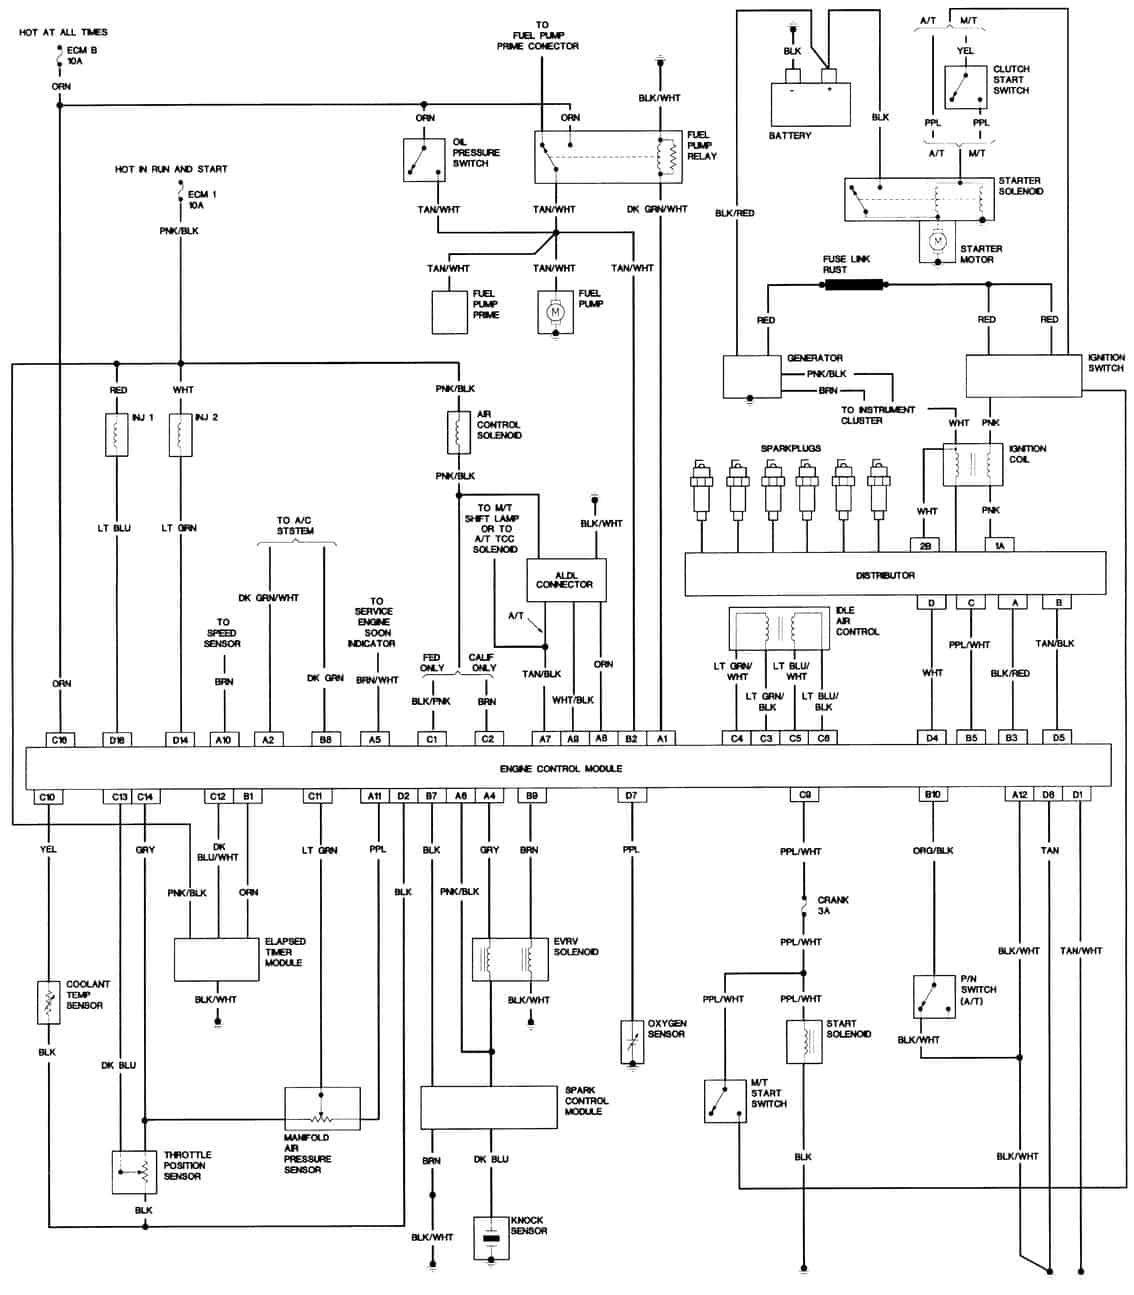 hight resolution of s10 pickup engine diagram schematics wiring diagrams u2022 rh seniorlivinguniversity co 1987 pontiac firebird ignition wiring chevy